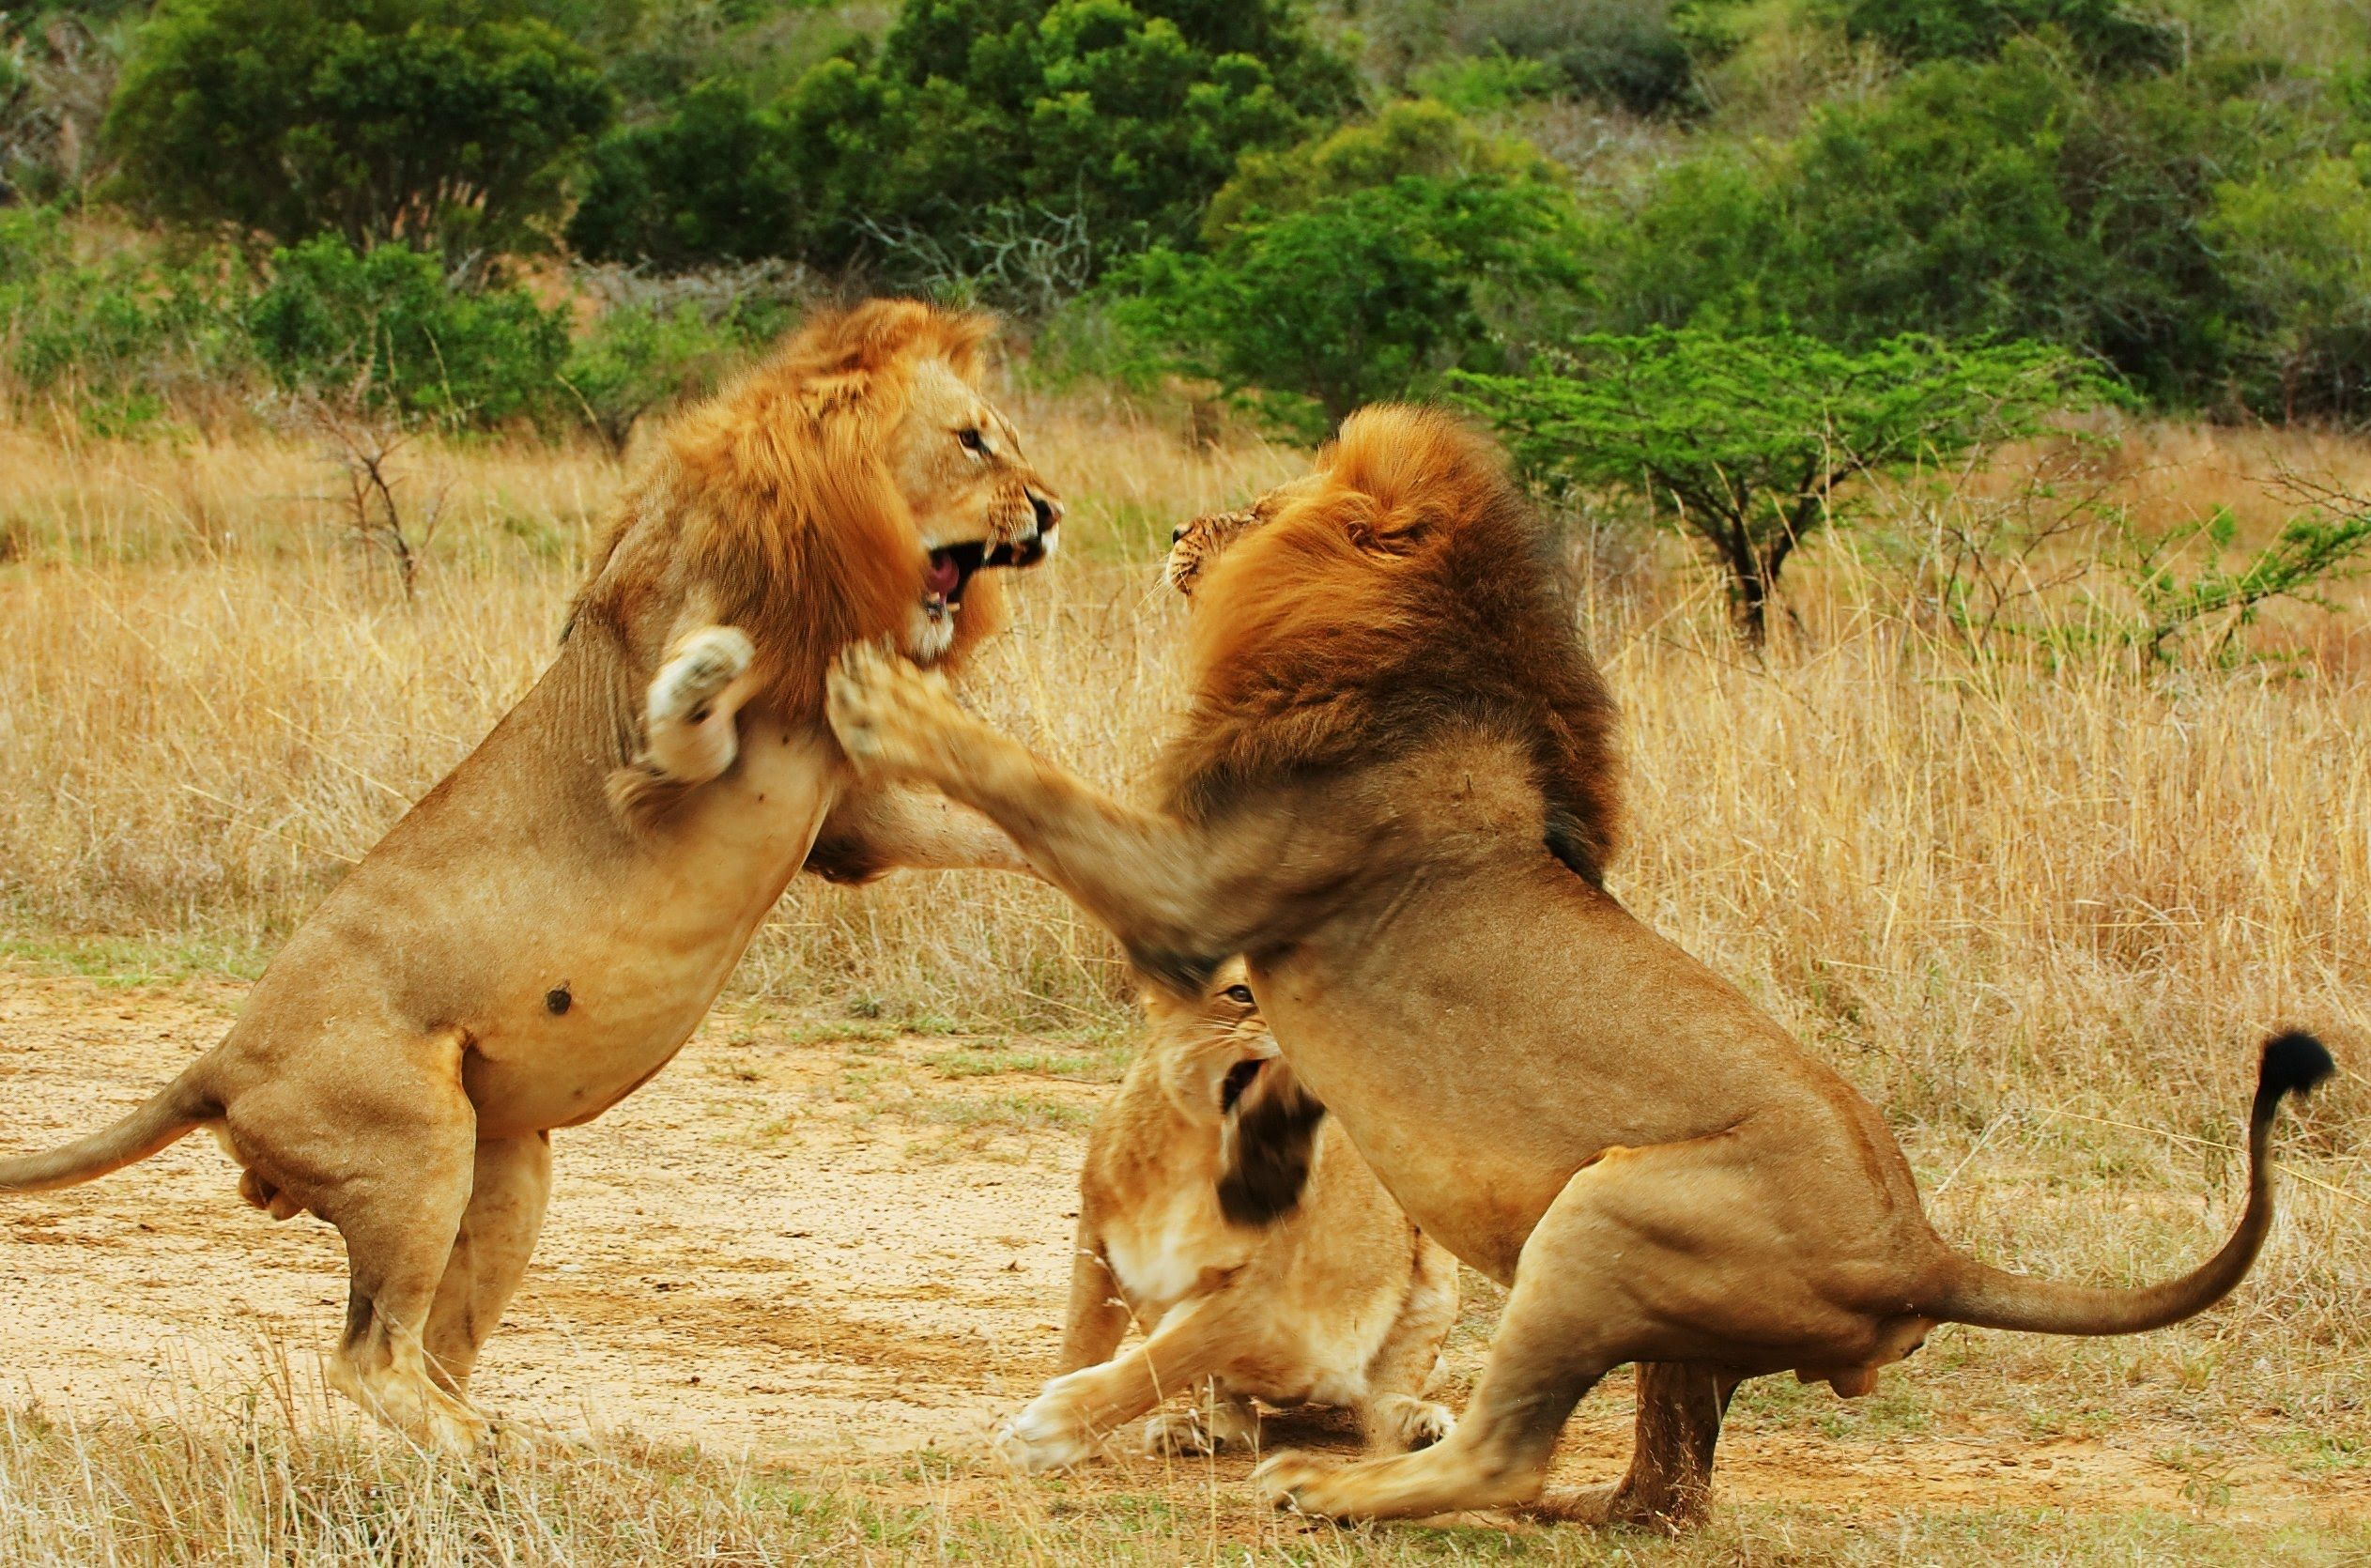 Lion Documentary 2015 | Animals Documentary National Geographic - Lions .